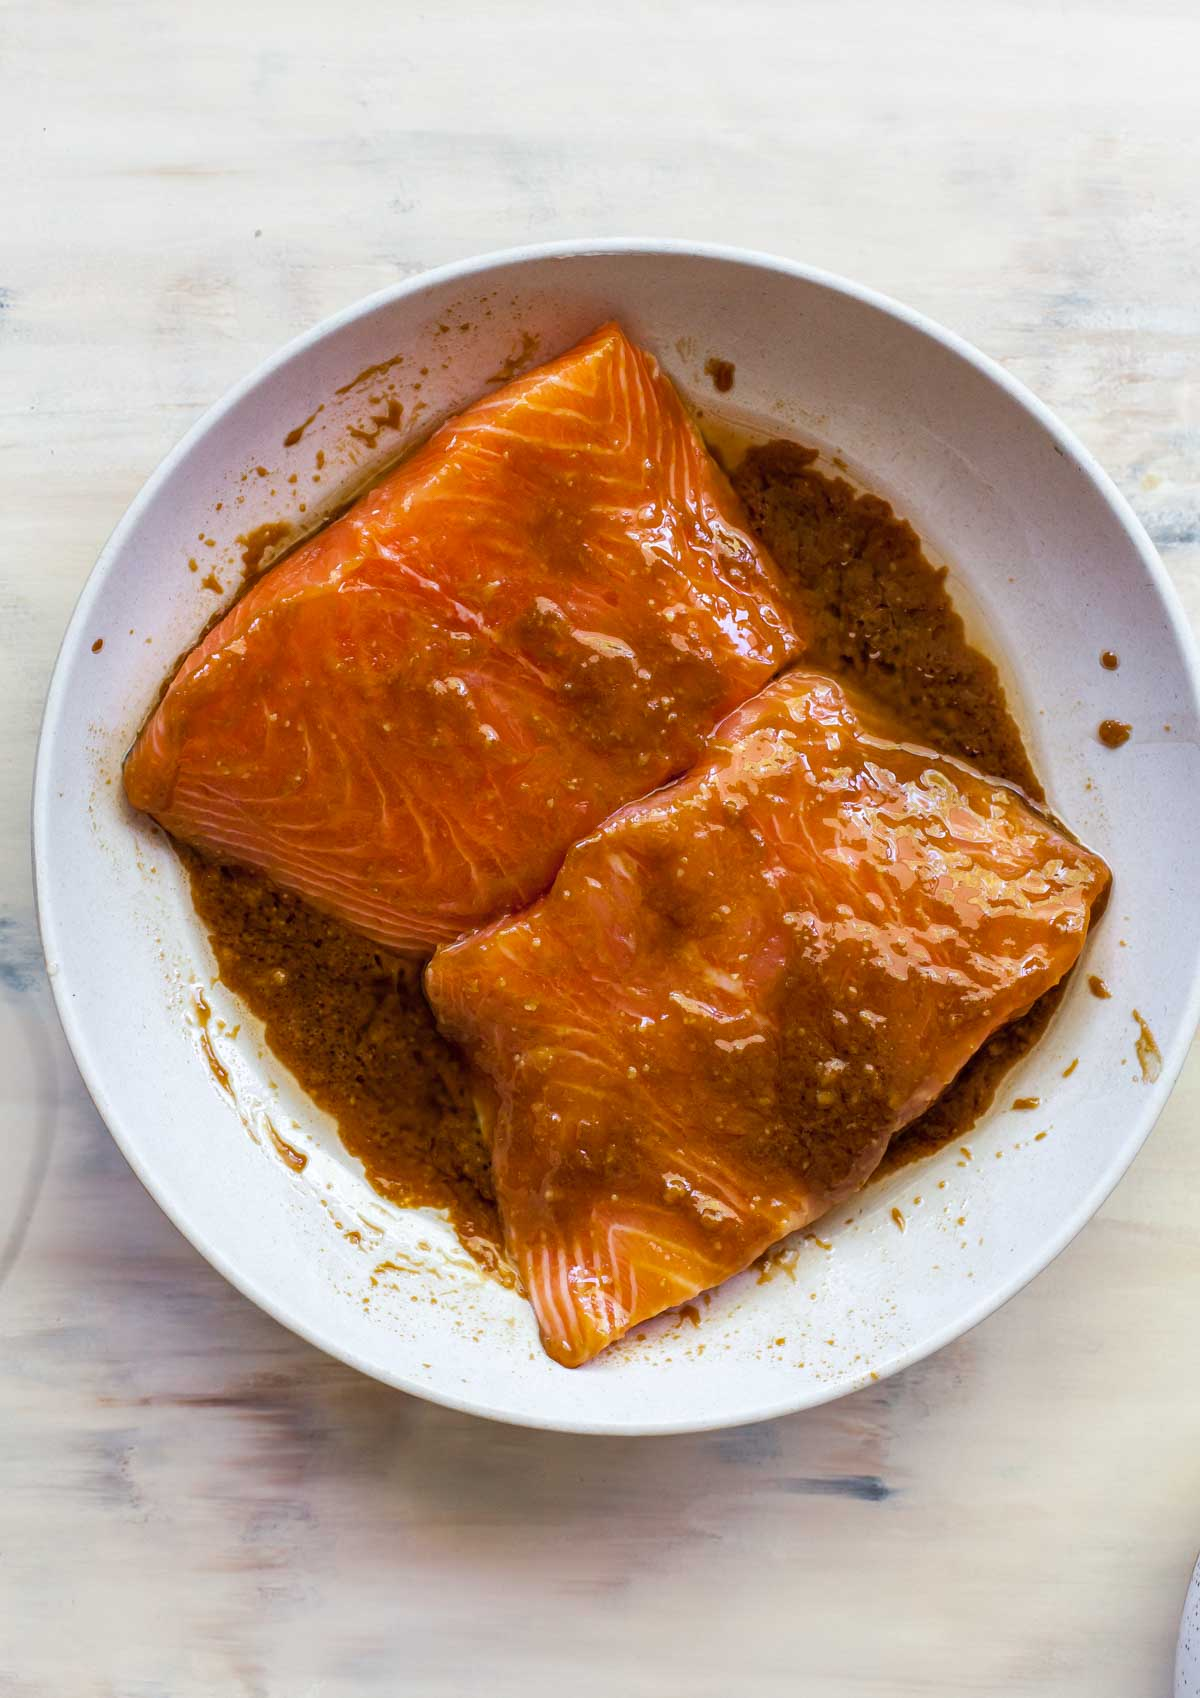 Raw salmon fillets in a bowl covered in miso marinade